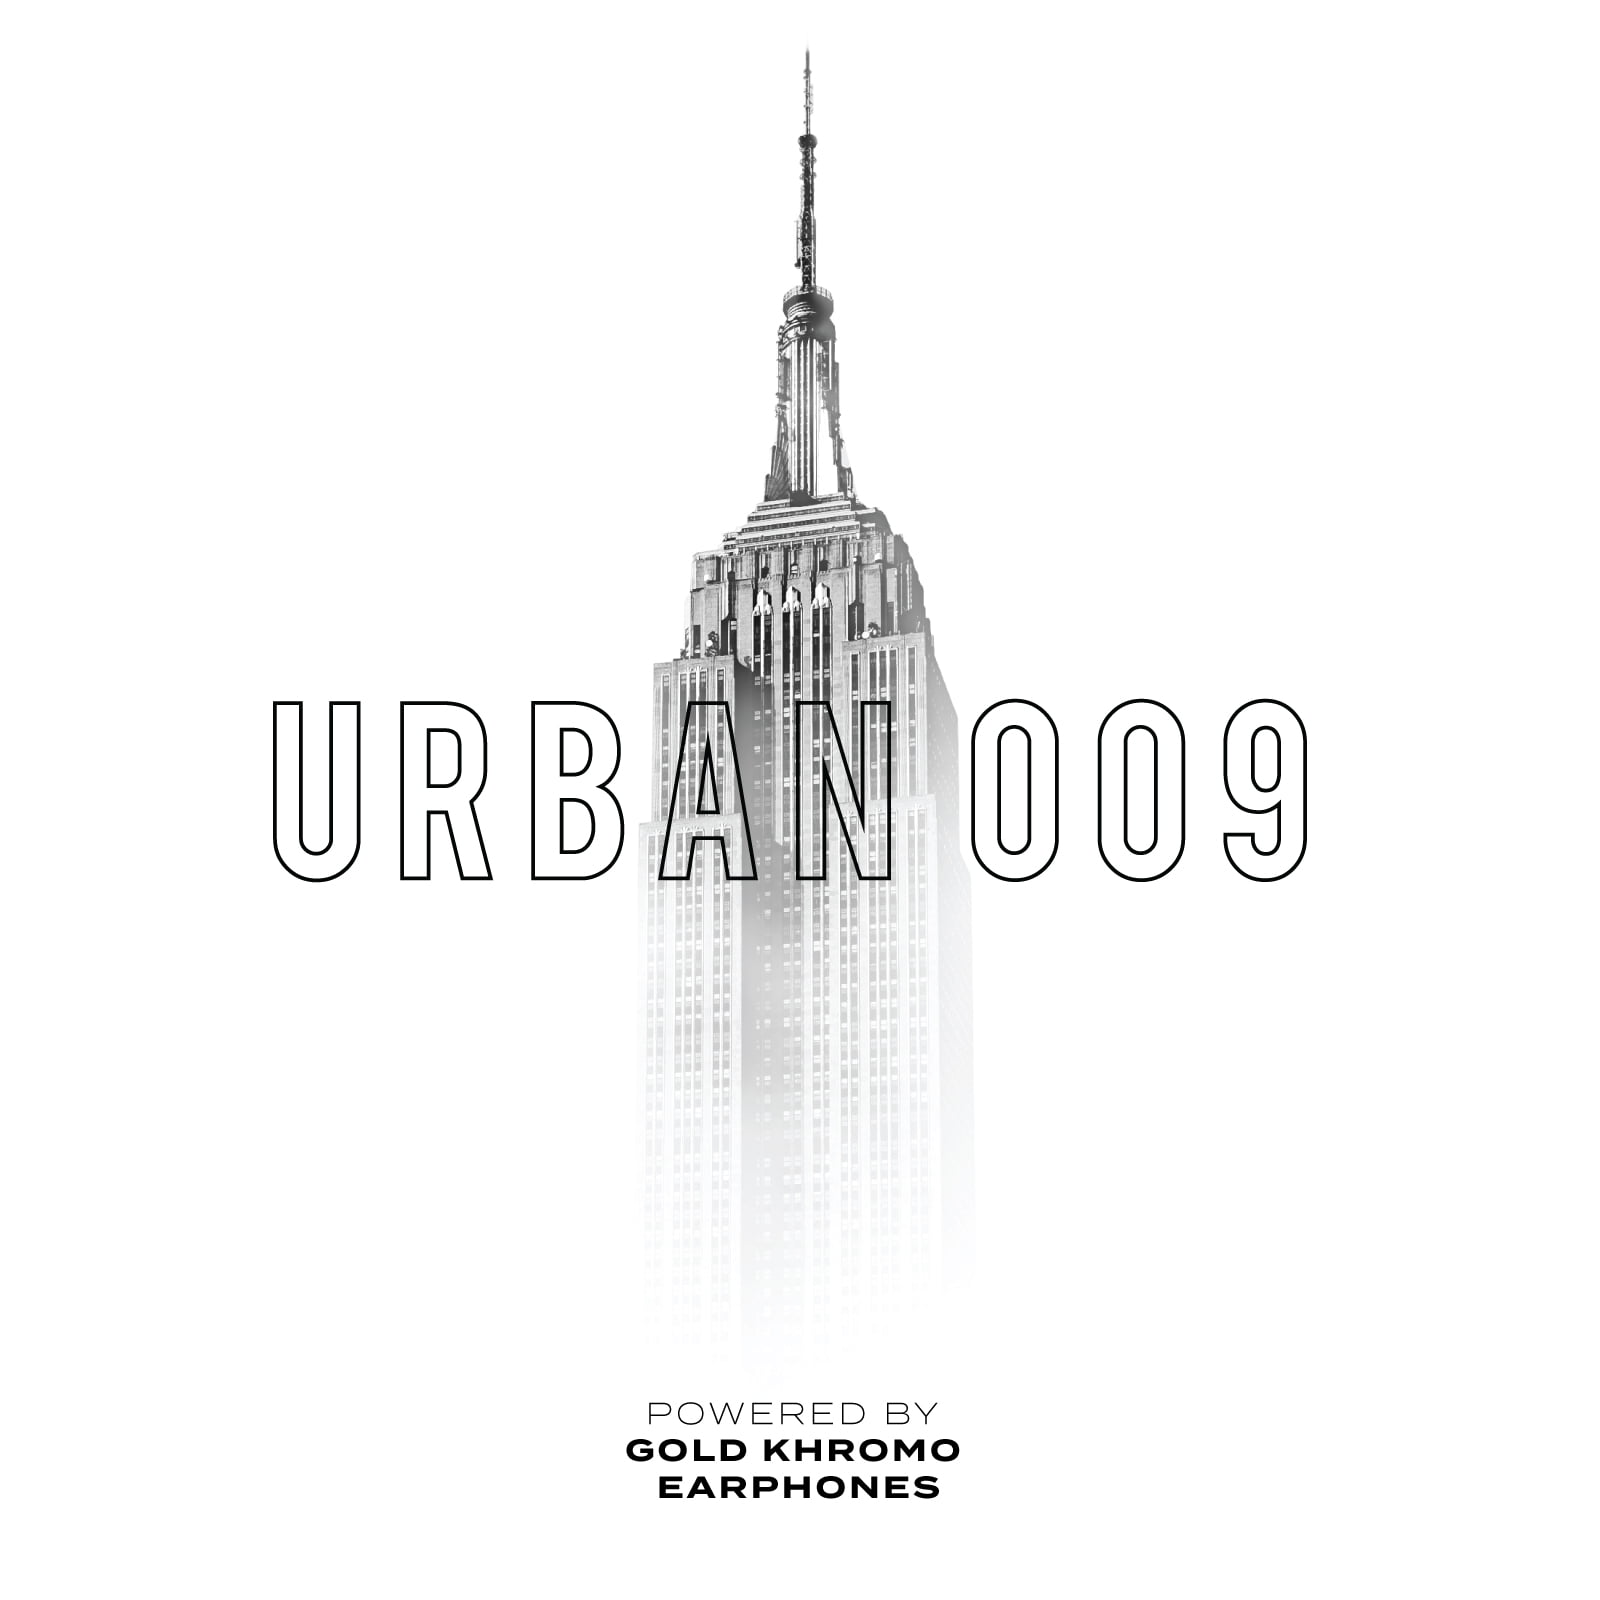 SEPTEMBER PLAYLIST: URBAN 009 POWERED BY GOLD KHROMO